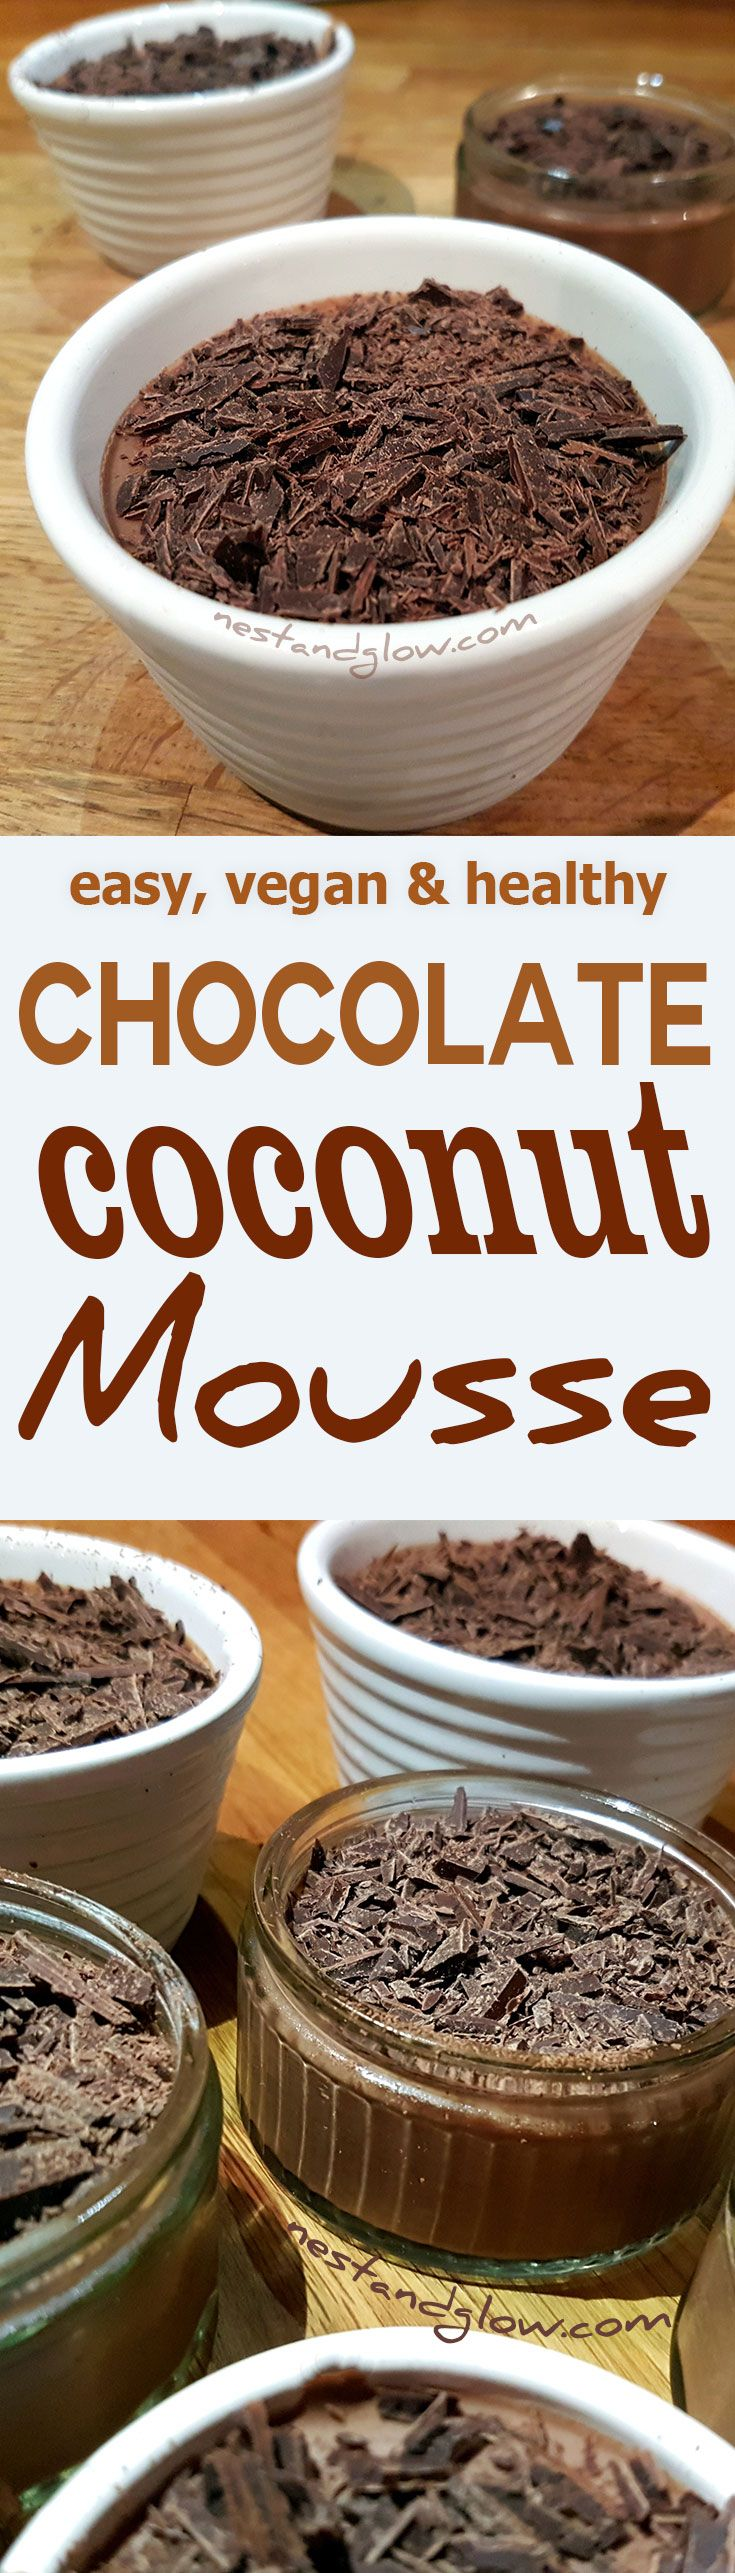 A rich chocolate mousse made with coconut milk that takes minutes to make. It's thick, rich, creamy, dairy-free and refined sugar free. via @nestandglow